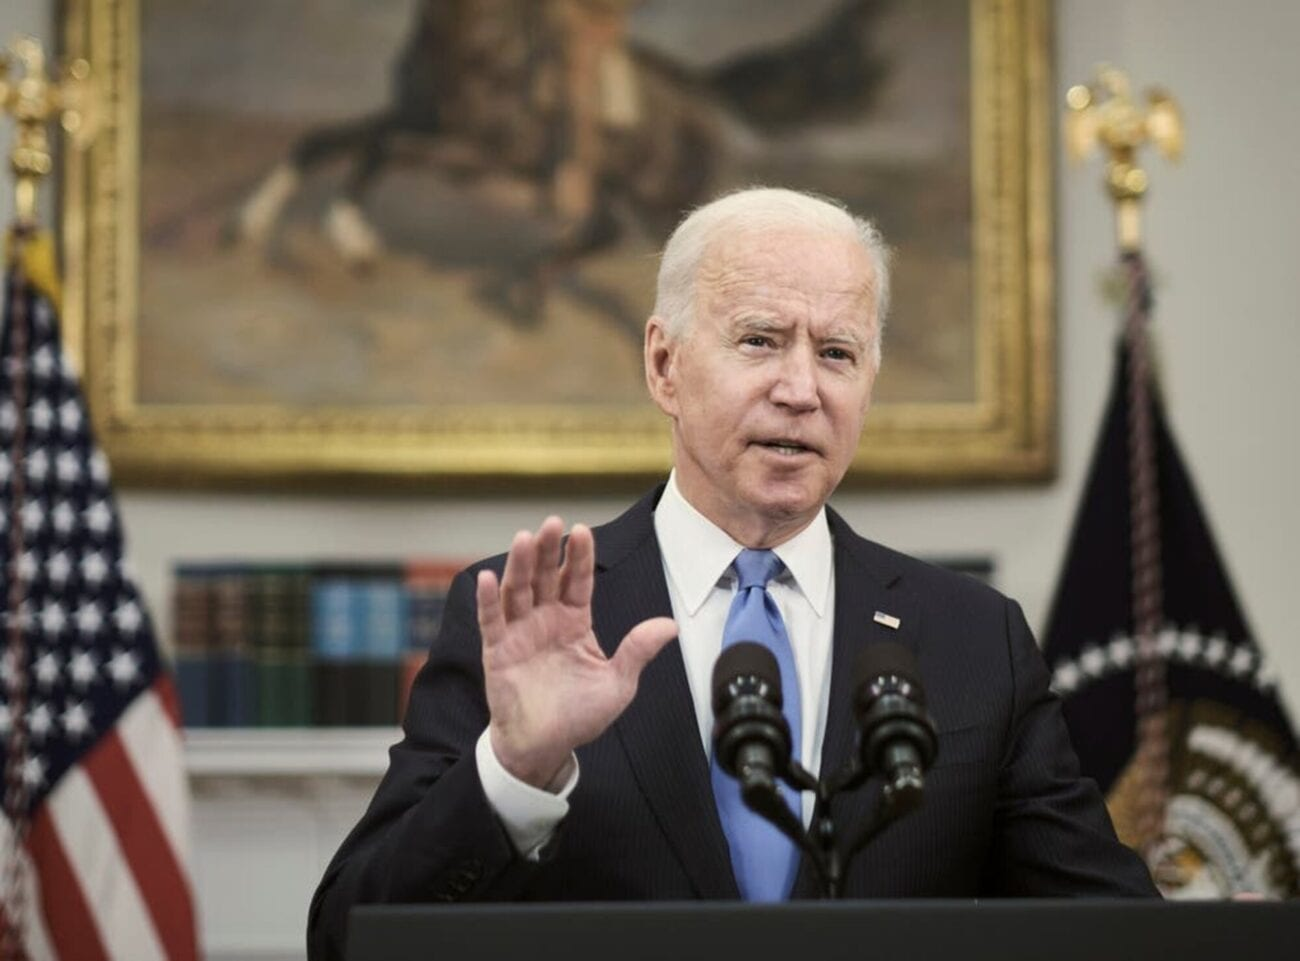 After the Venmo account of Joe Biden was discovered by the public, the company has been making changes on protecting your account. Find out here.